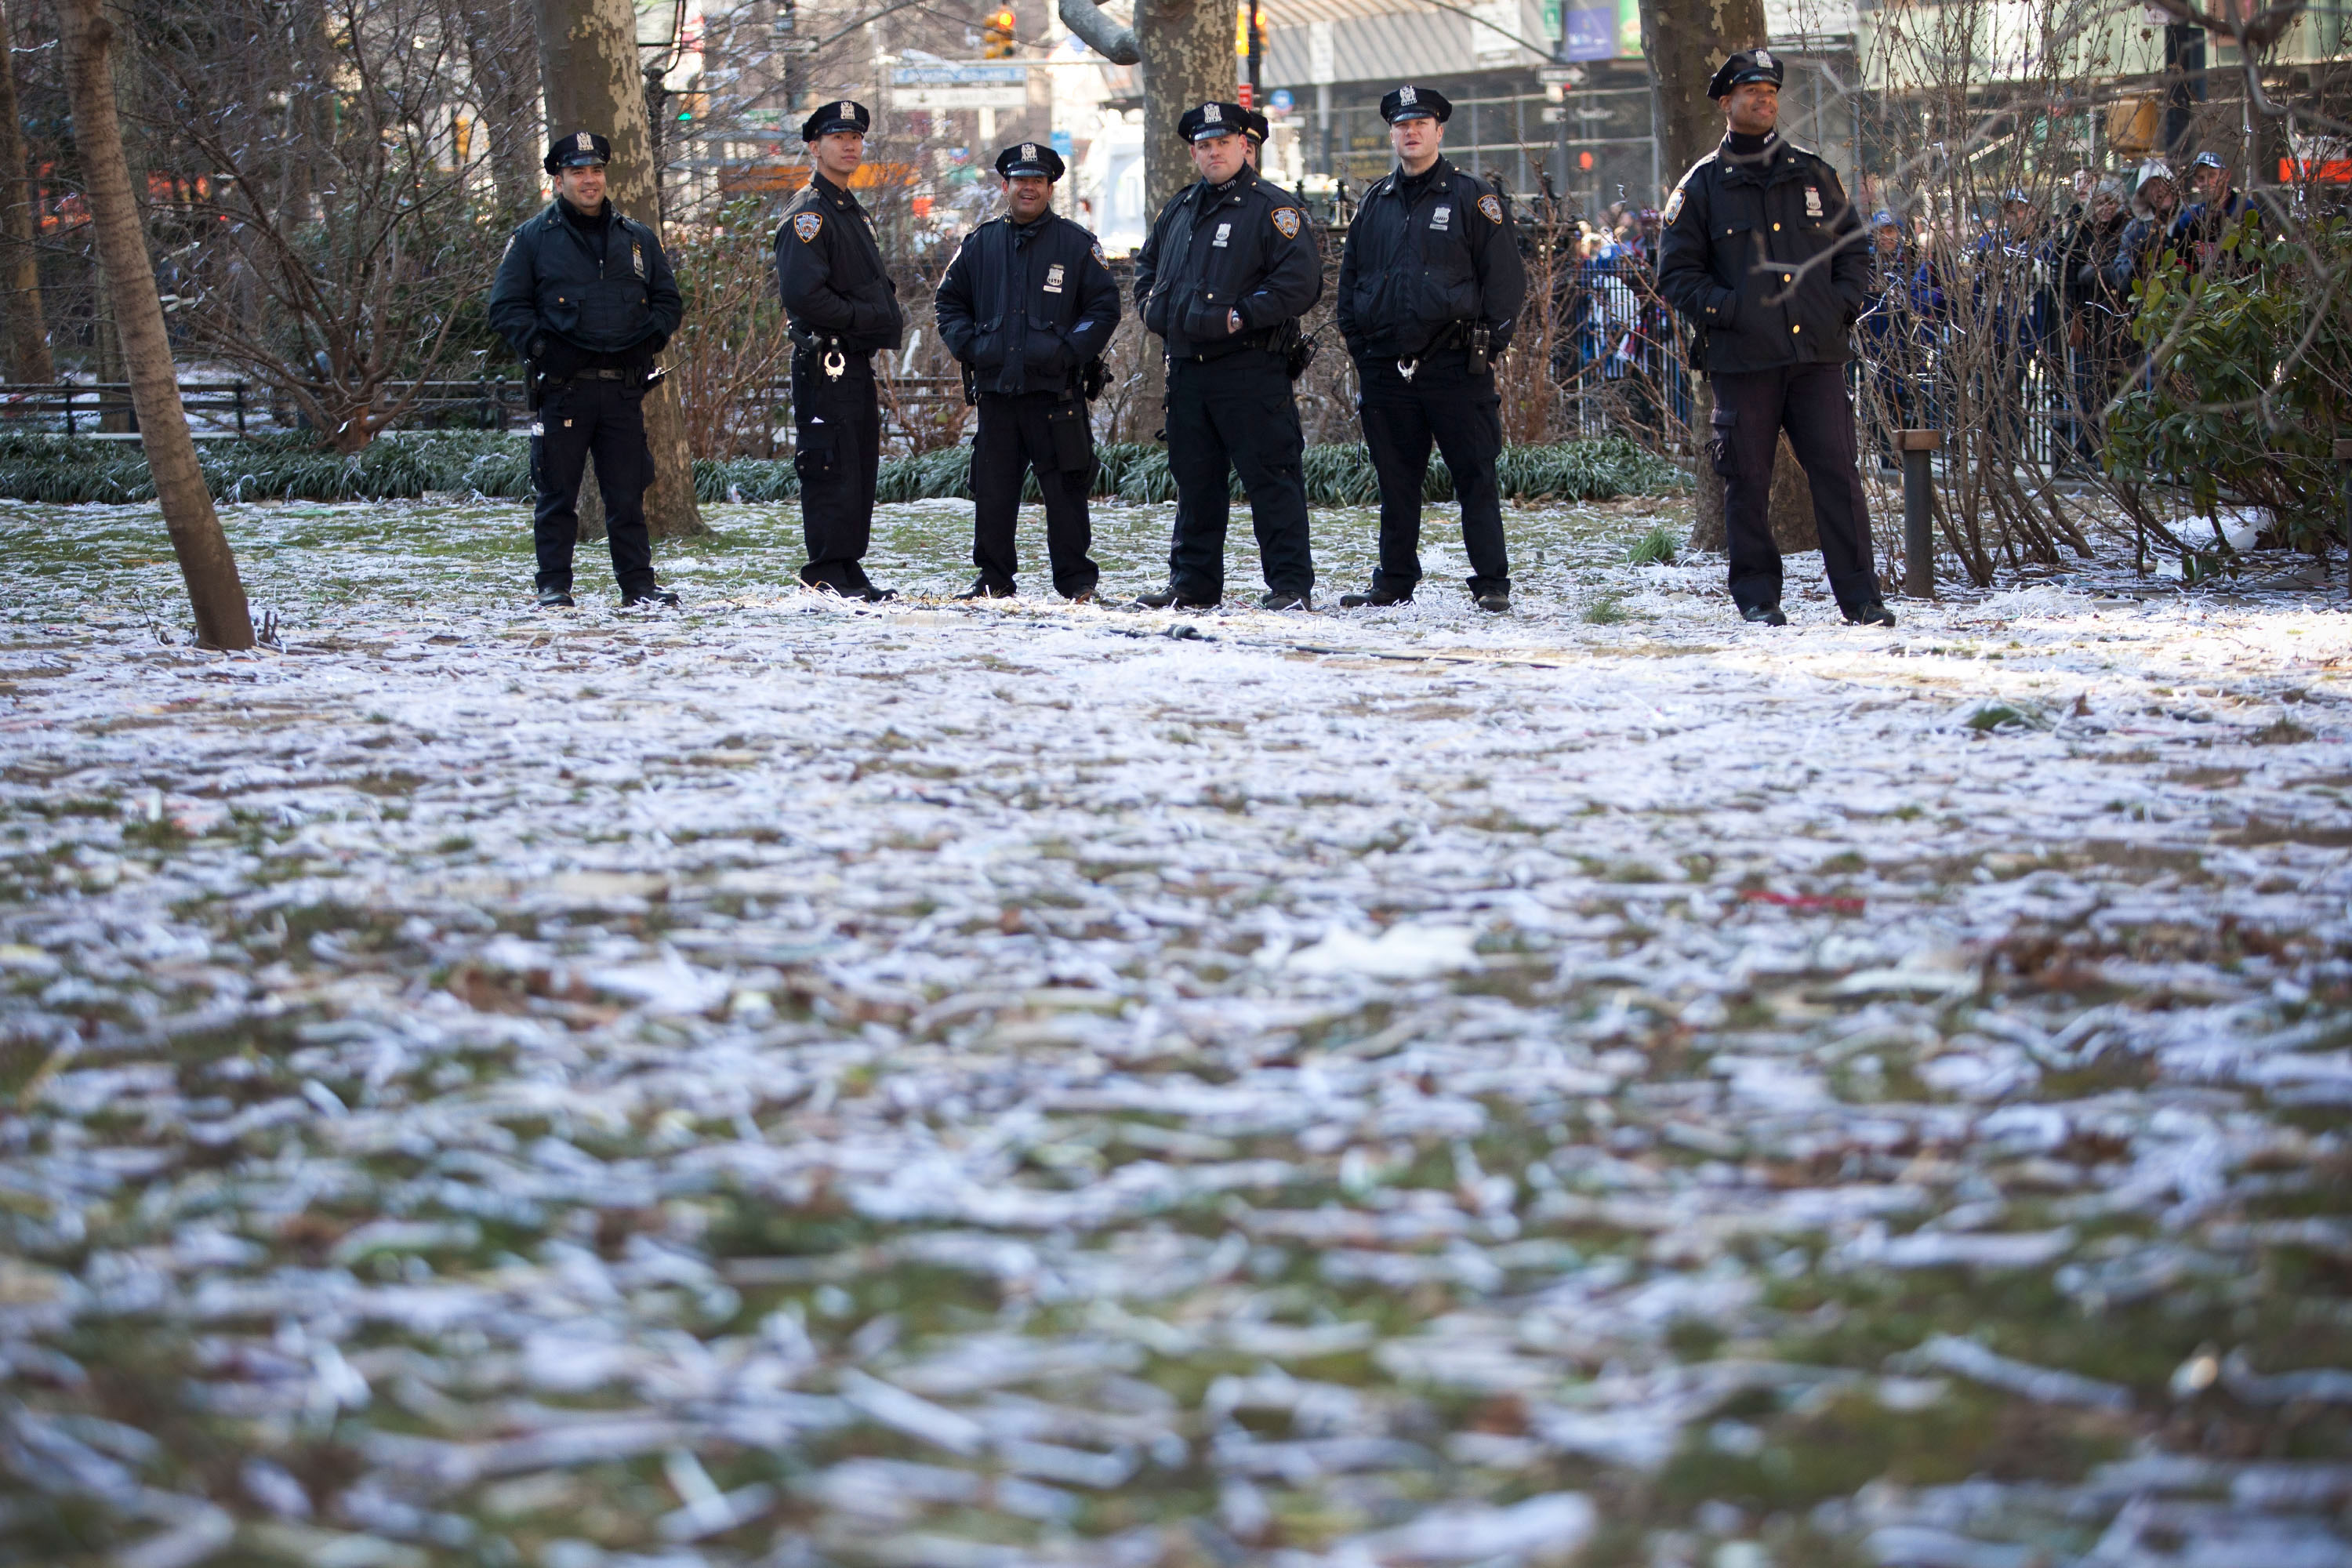 Police stand amongst a field of ticker tape after a parade for the New York Giants in 2012.  (Photo by Andrew Burton/Getty Images)